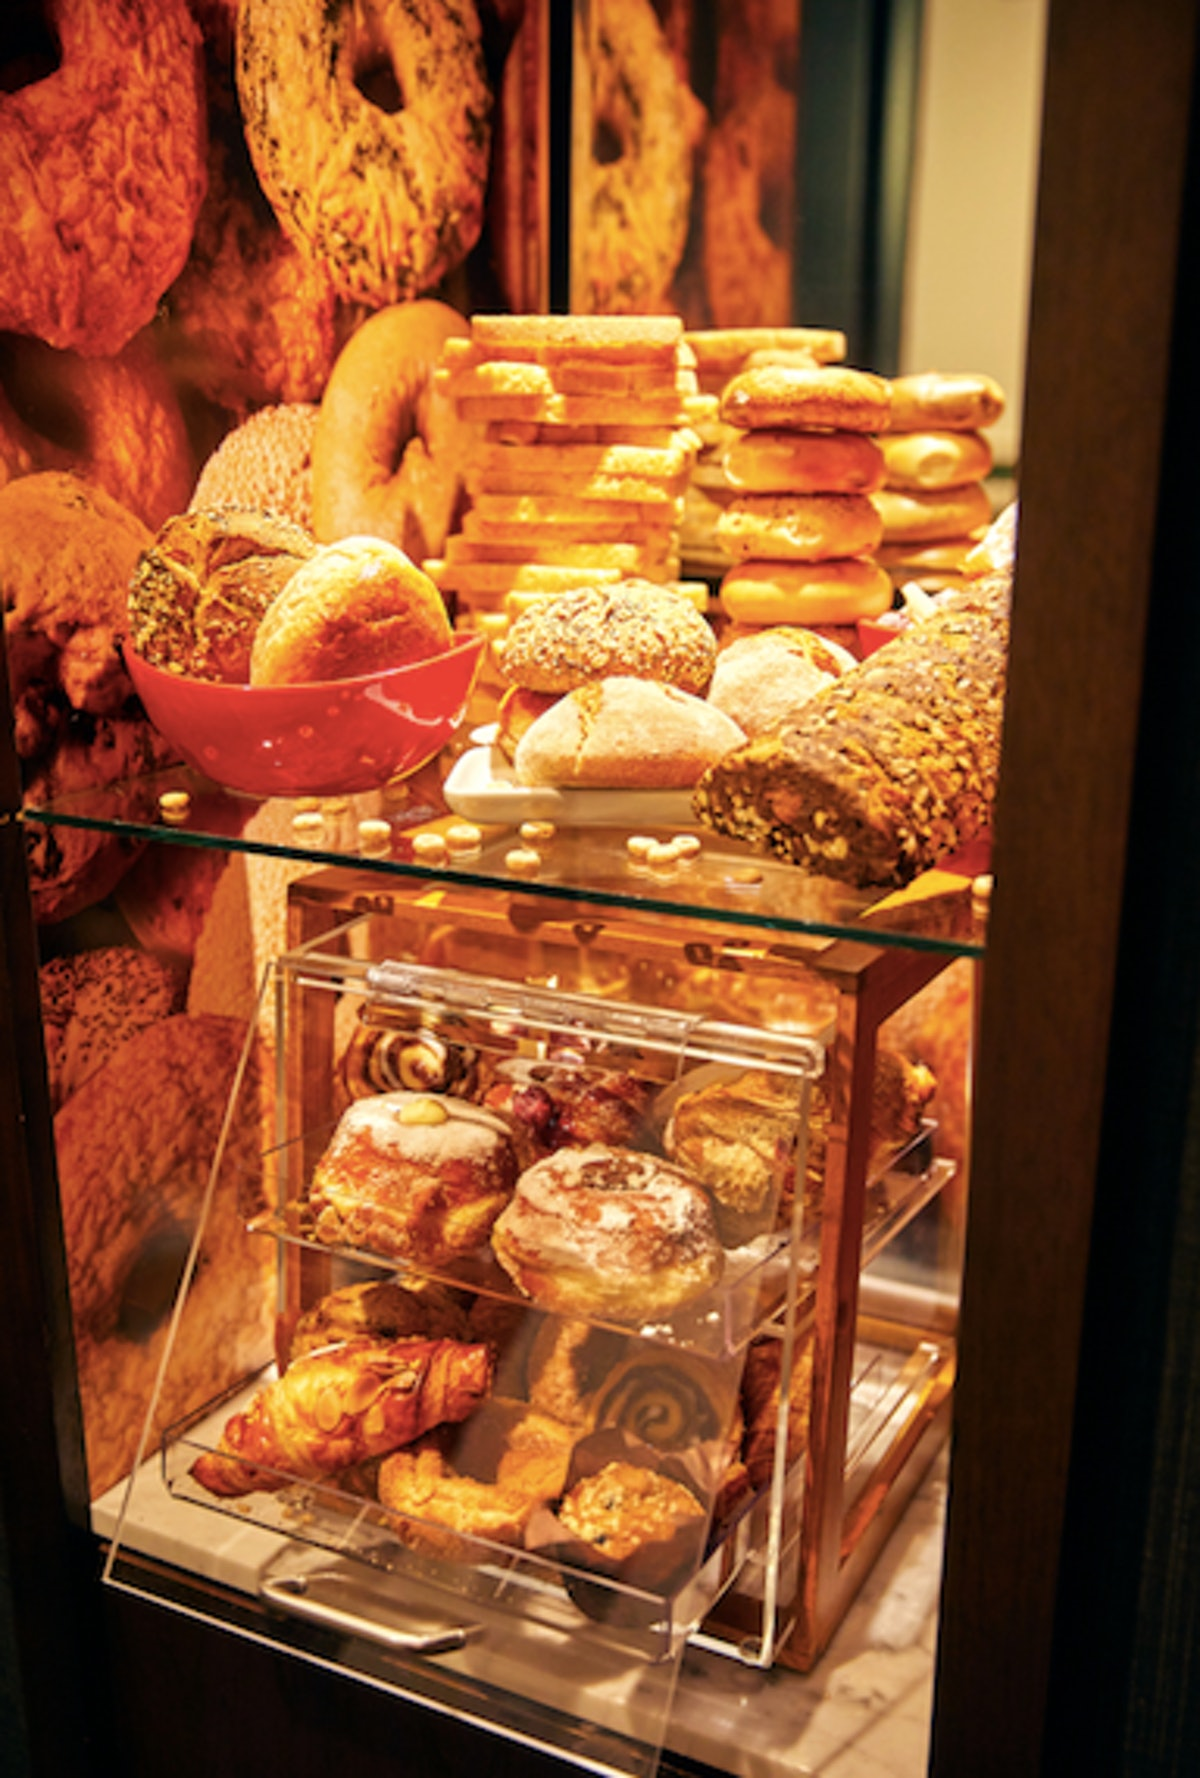 Hotels.com's Bread and Breakfast Hotel includes a minibar with baked goods.